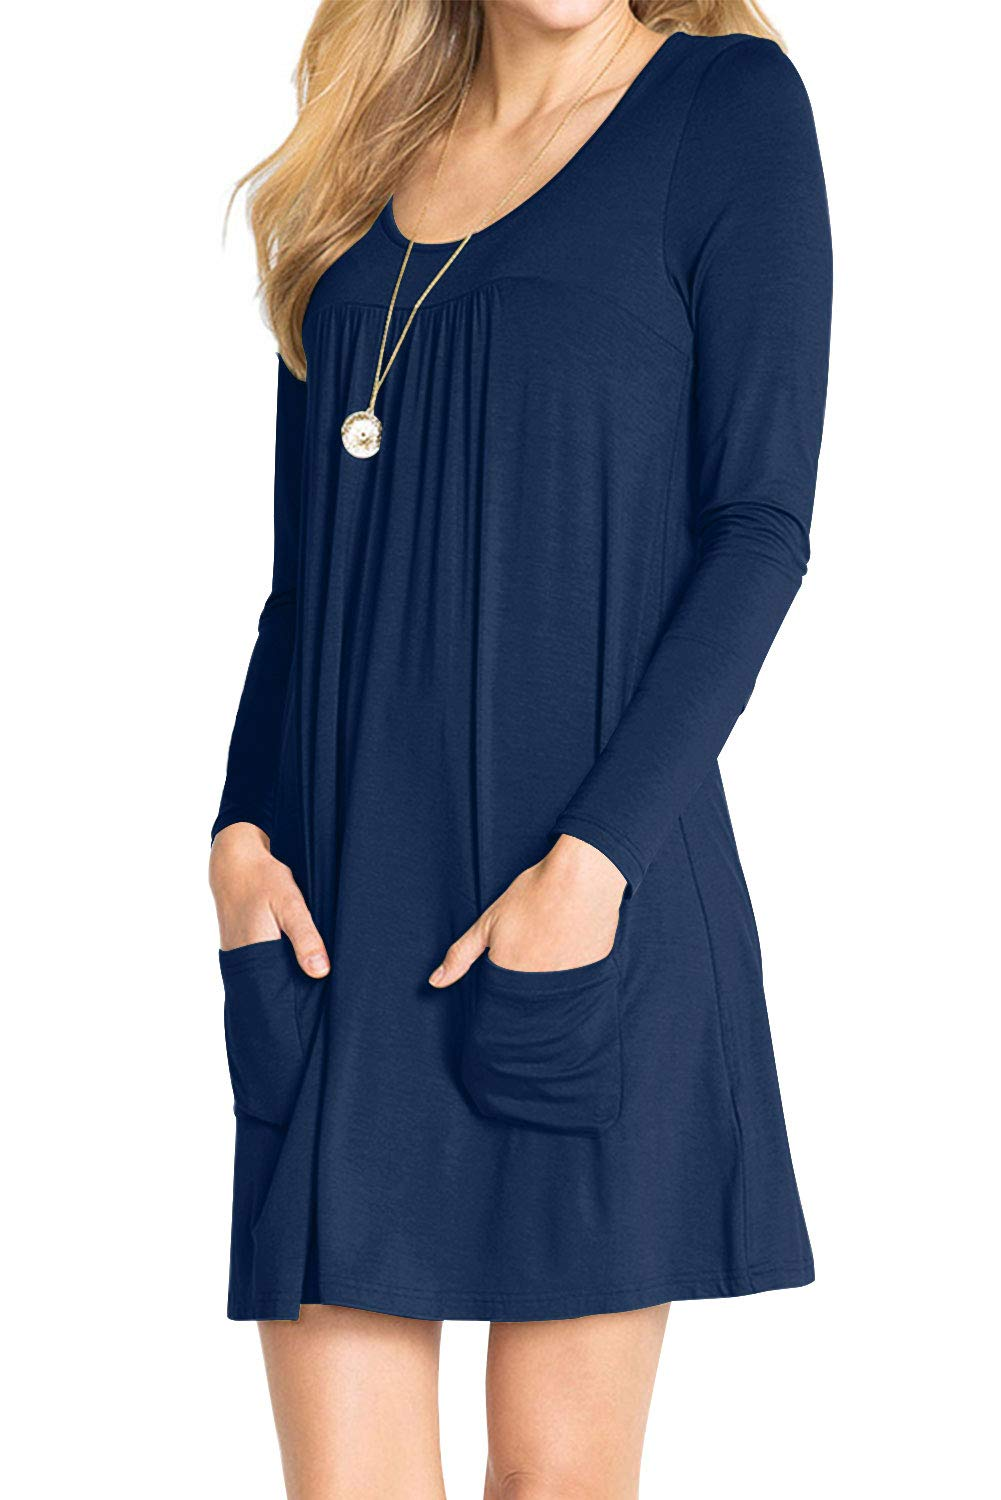 AMCLOS Womens Dress Plus Size Swing Simple Ruffle with Pockets Loose Casual Plain Round Neck Dresses Long Sleeve (Medium, Royal Blue)